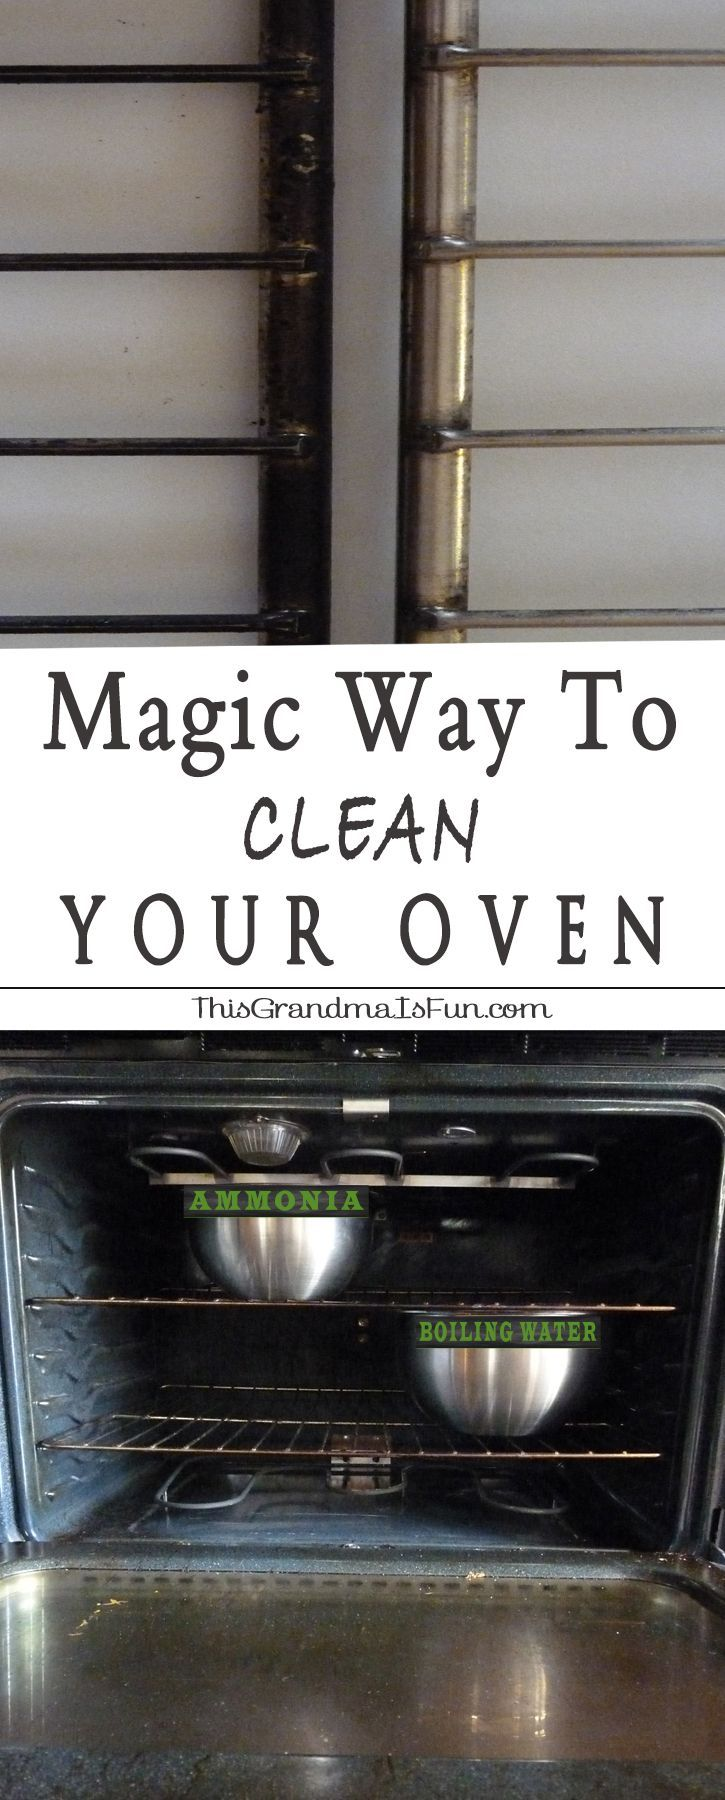 Magic Way to Clean Your Oven - Cleaning the oven is one of my least favorite tasks, I've been known to procrastinate cleaning mine for months. It's a nasty job that usually involves what seems like endless scrubbing. Not anymore. Hello, household Ammonia! I had no idea it could make my life easier. Using Ammonia to clean my ovens cuts the scrubbing down by 90%. I don't avoid cleaning my ovens anymore because getting them clean is quick and easy.